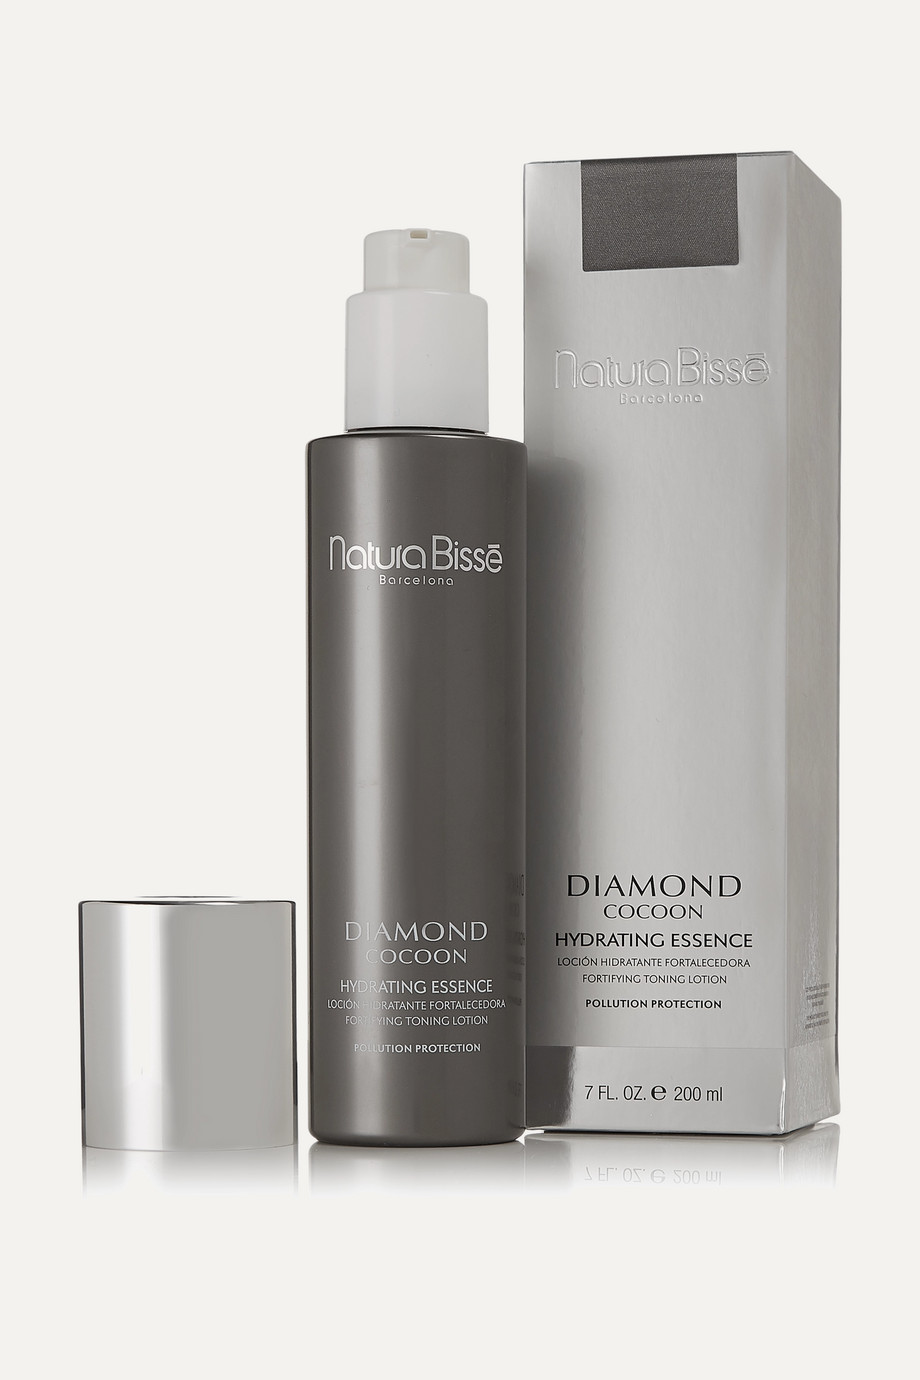 Natura Bissé Diamond Cocoon Hydrating Essence, 200ml